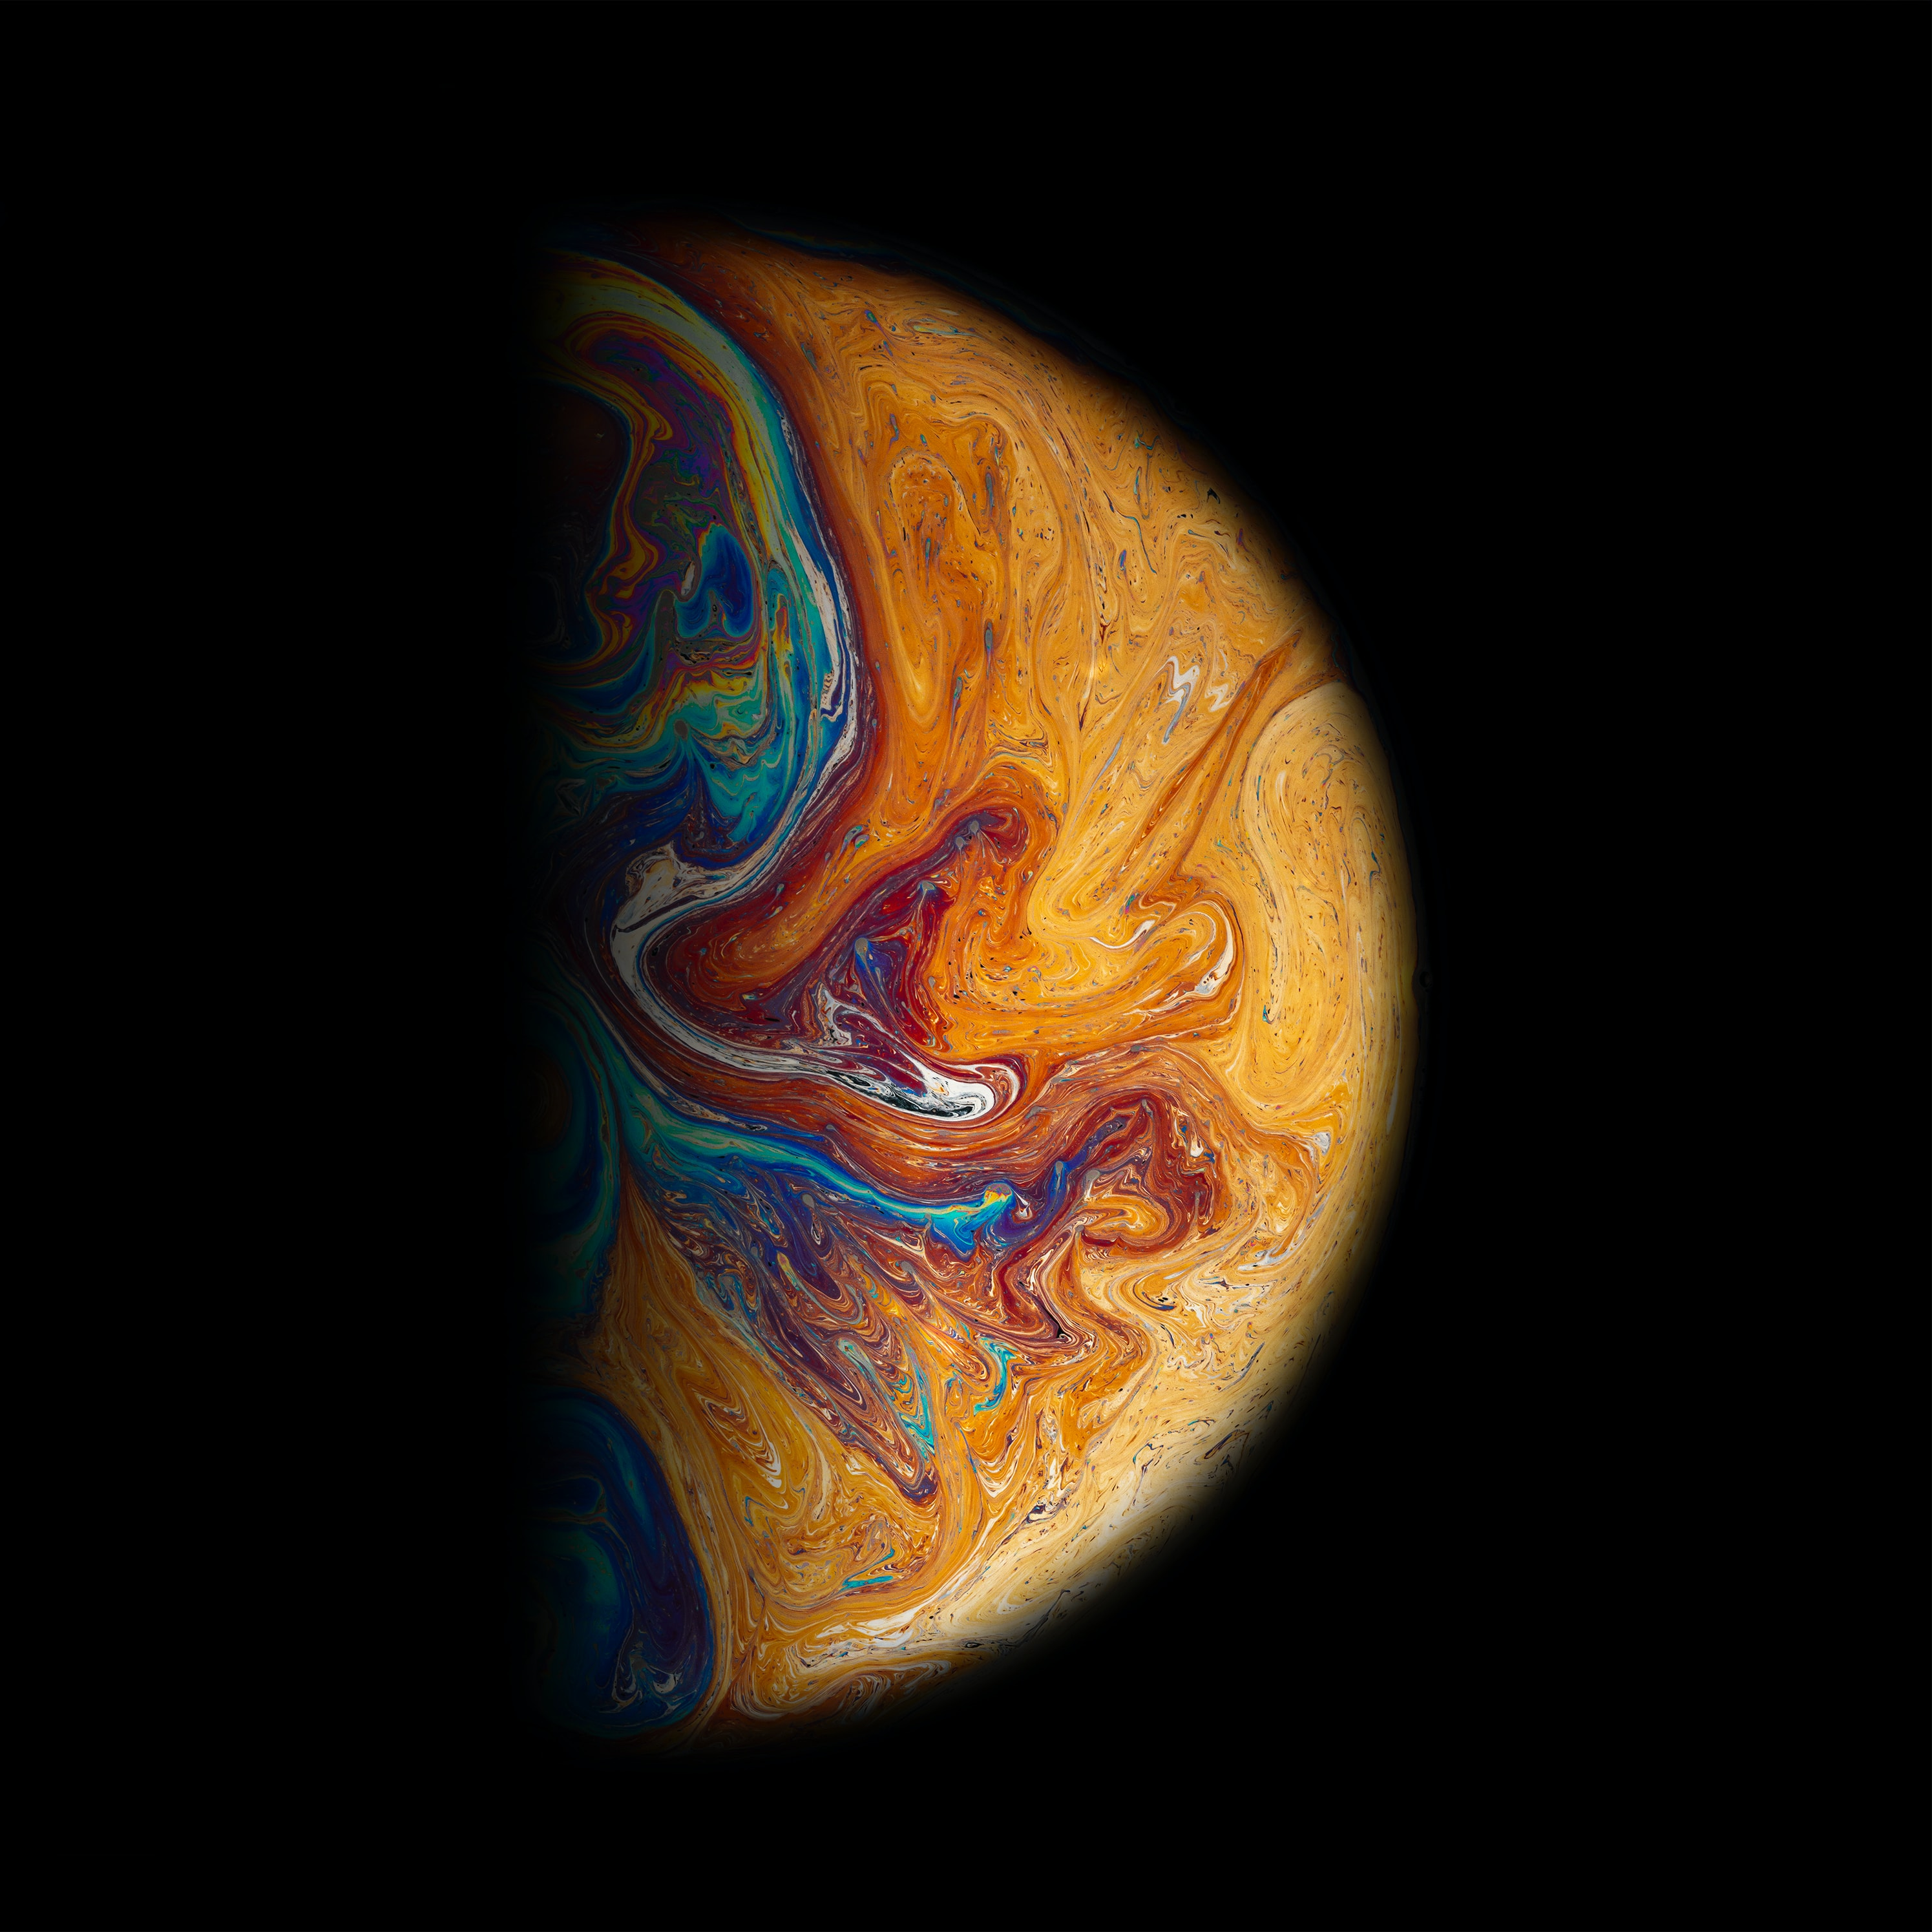 painting of planet